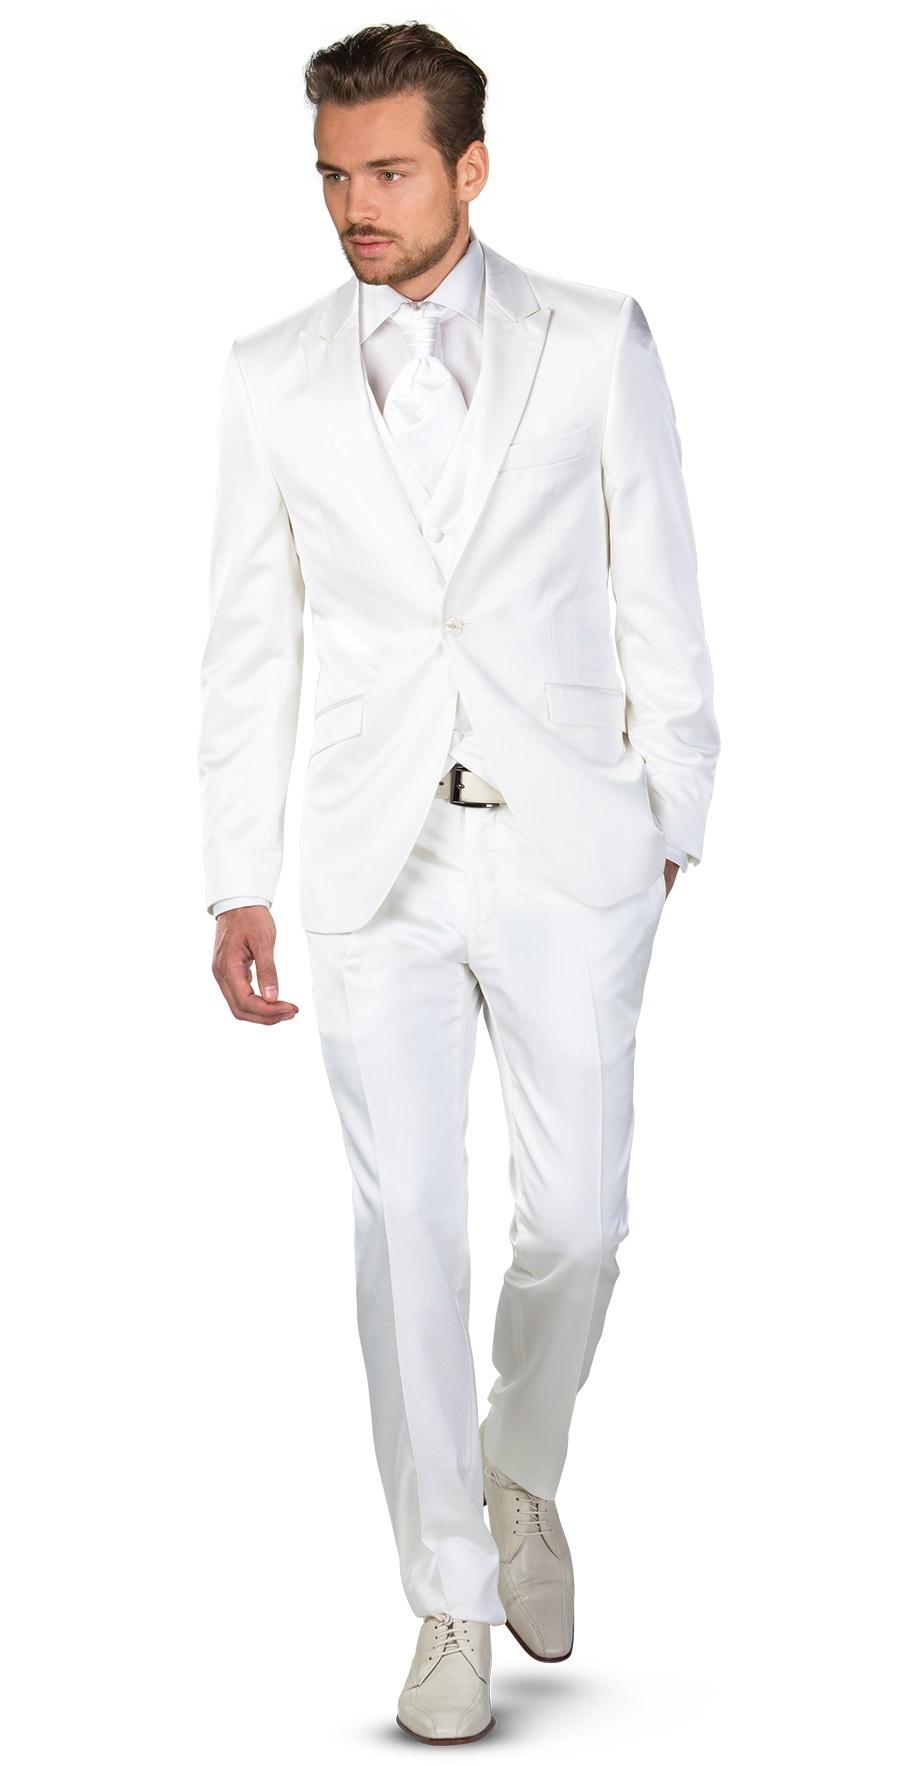 Mens All White Suit Dress Yy